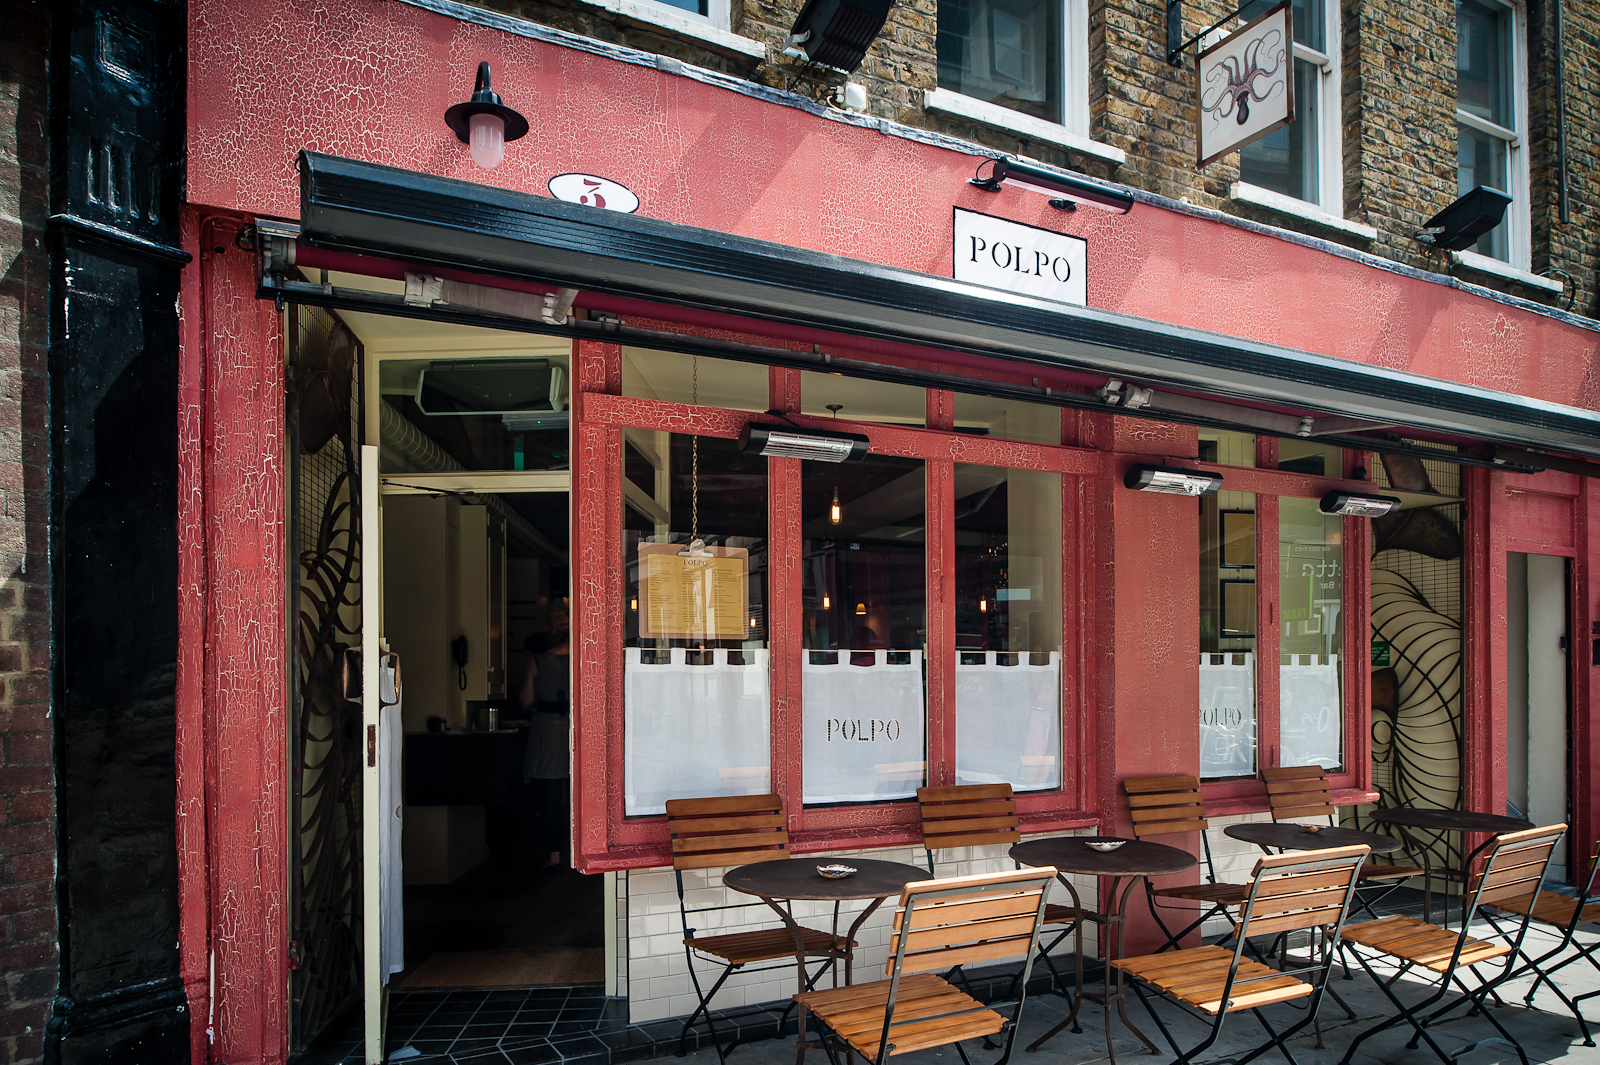 Polpo restaurant group from Russell Norman and Richard Beatty will close two London restaurants